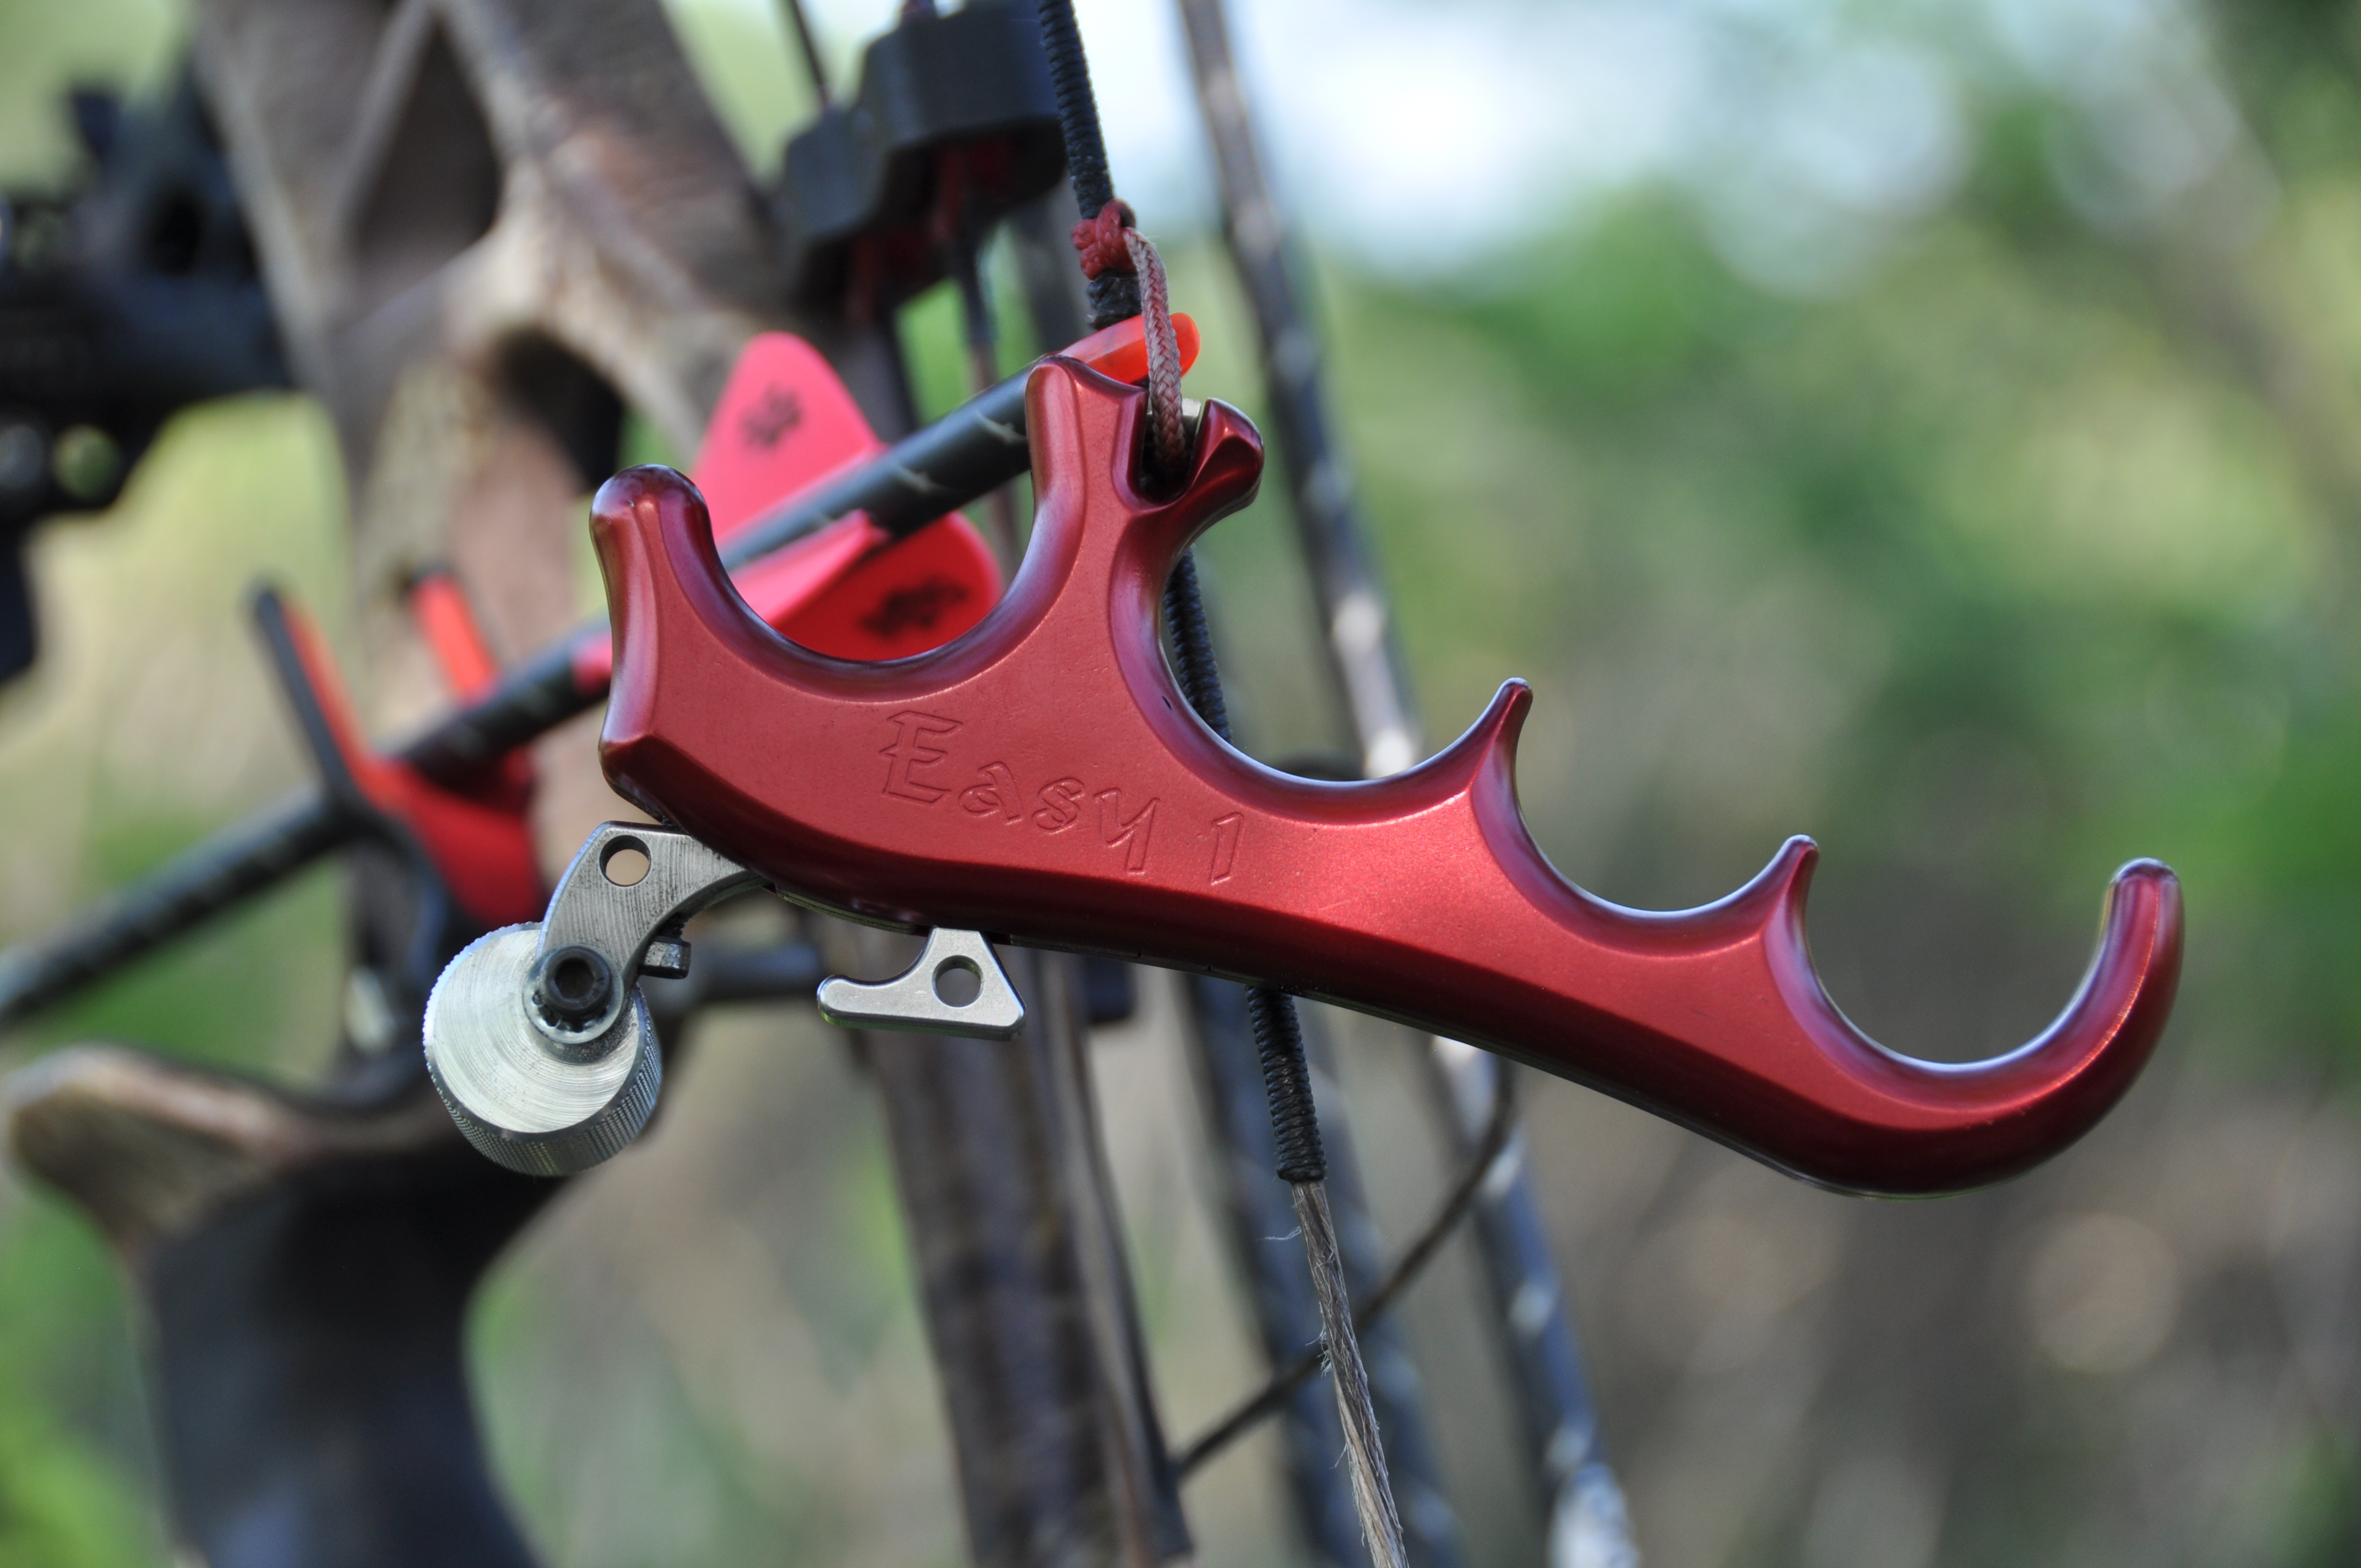 The Best Bow Release – Let it Fly! » targetcrazy.com